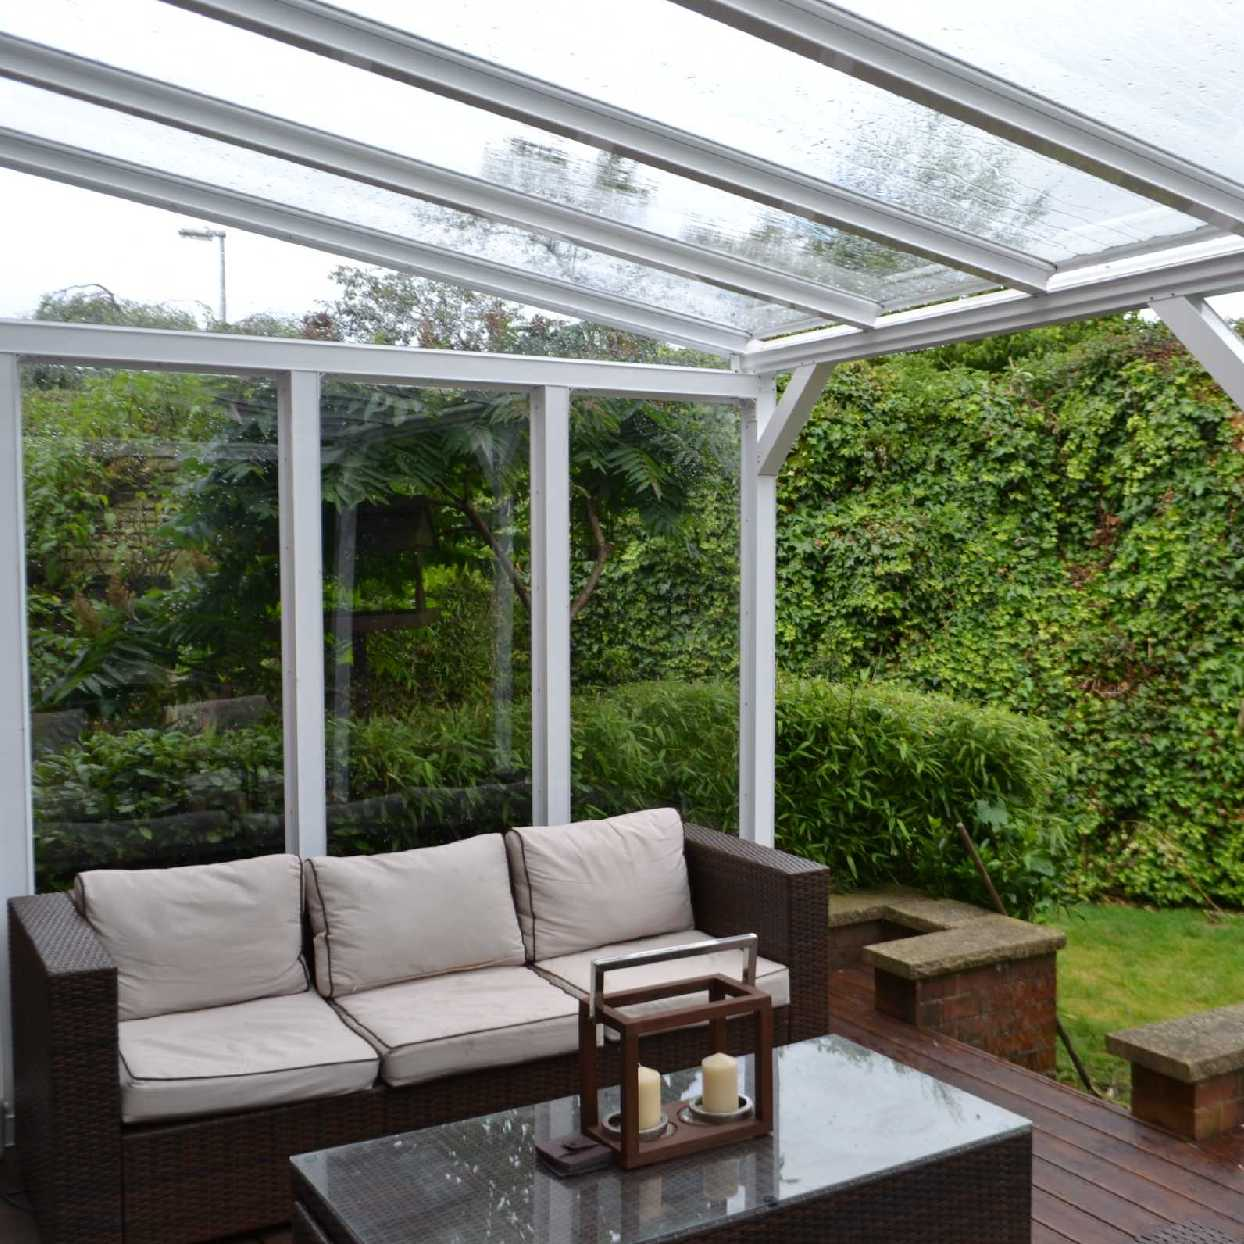 Omega Smart Lean-To Canopy with 6mm Glass Clear Plate Polycarbonate Glazing - 9.0m (W) x 4.0m (P), (4) Supporting Posts